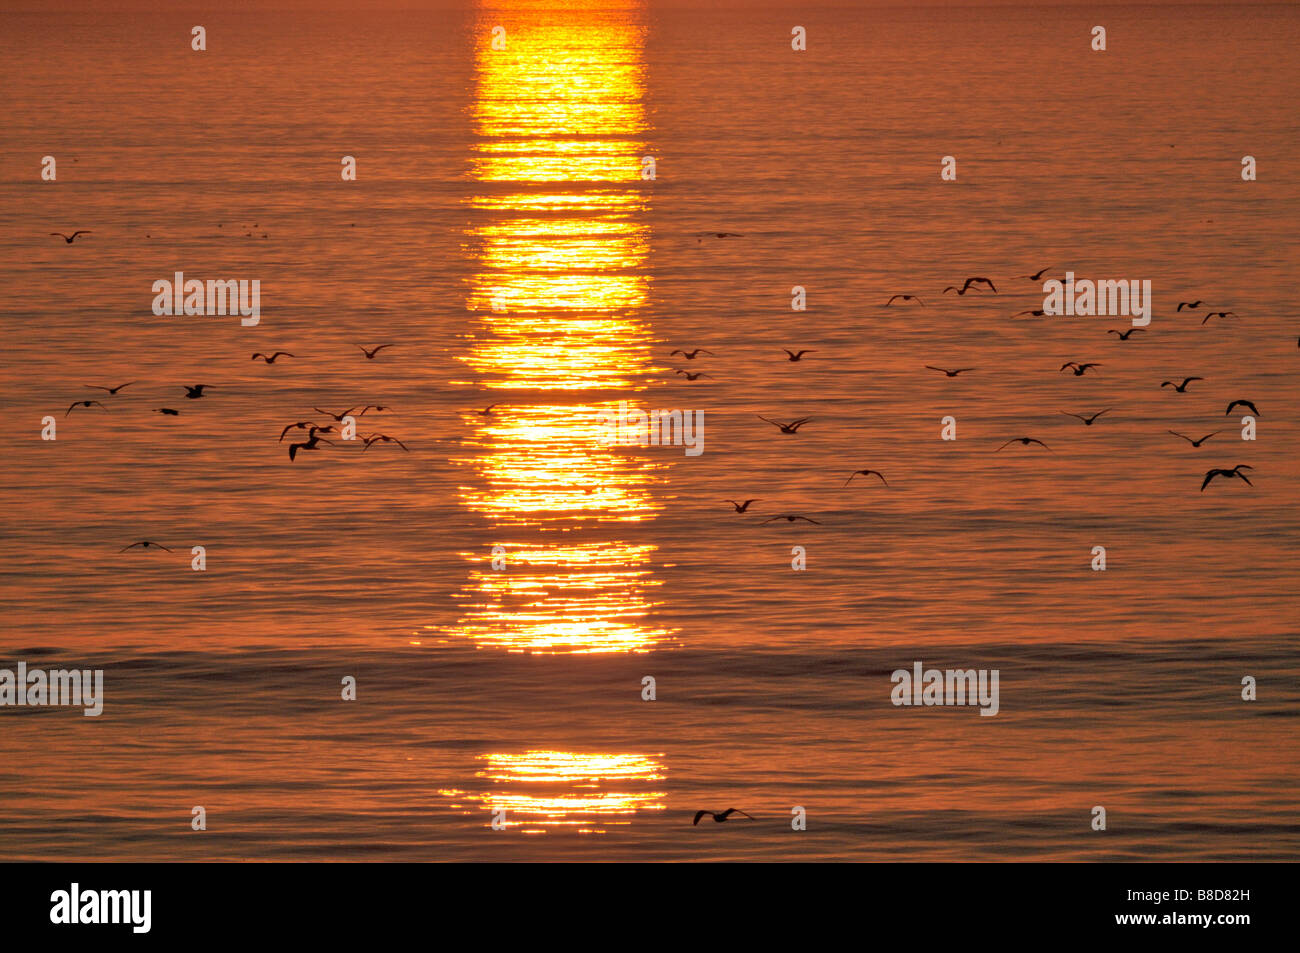 Reflections of the setting sun on the smooth surface of the Pacific Ocean in the Santa Monica Bay - Stock Image